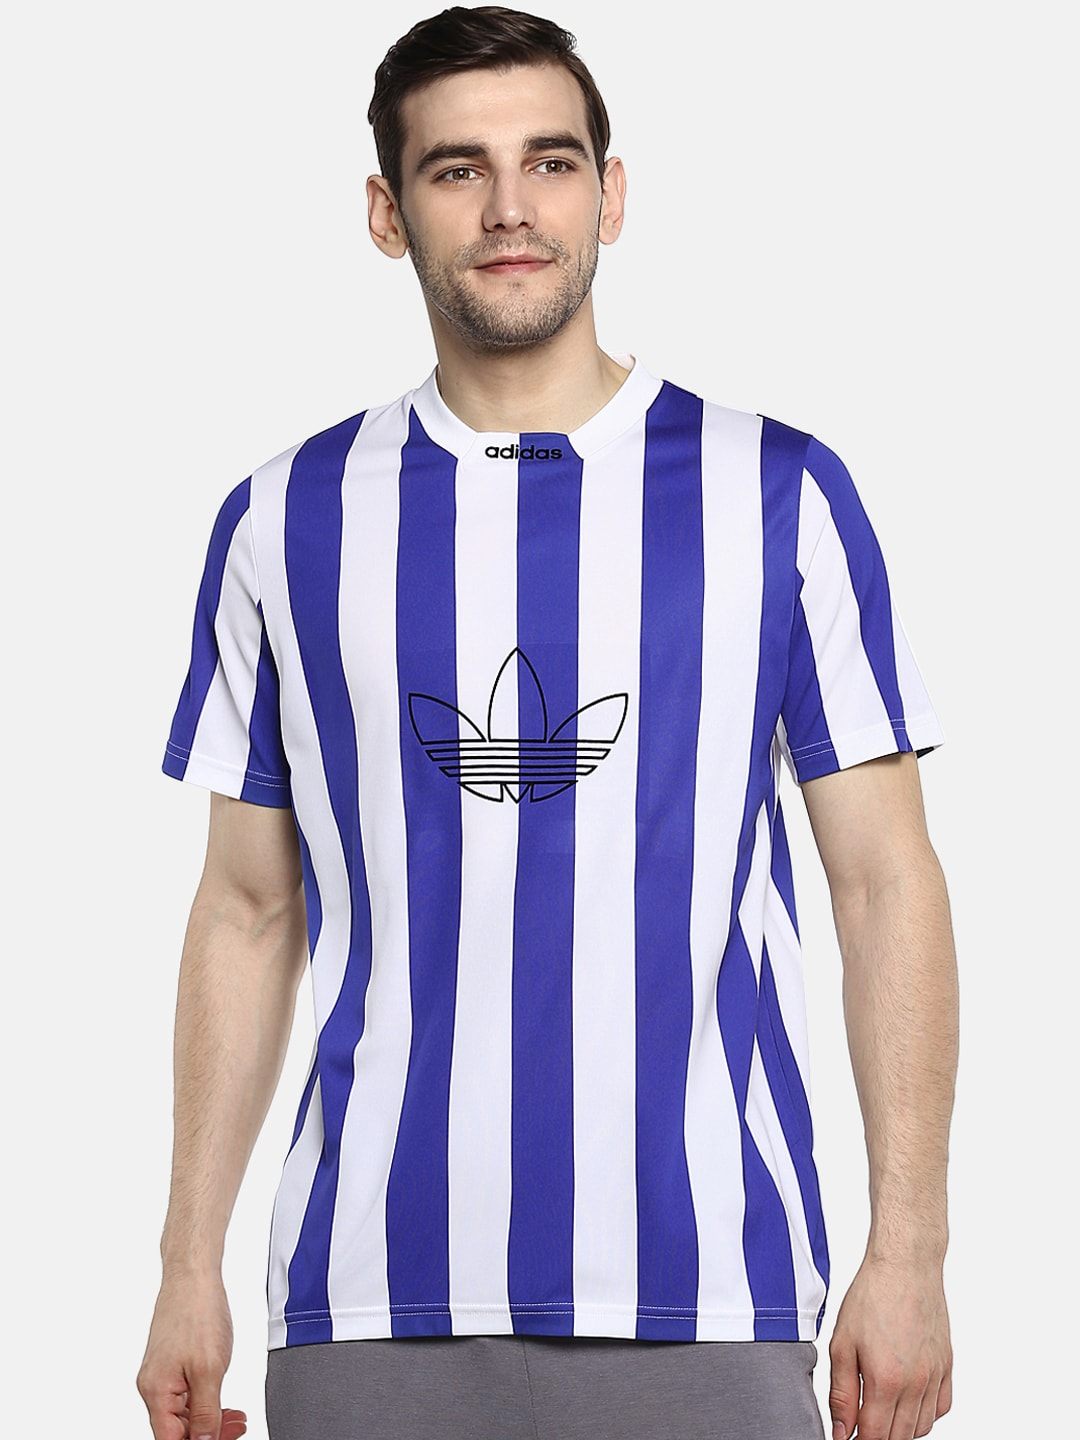 4696a70ece7 Adidas Jersey - Buy Adidas Jersey online in India